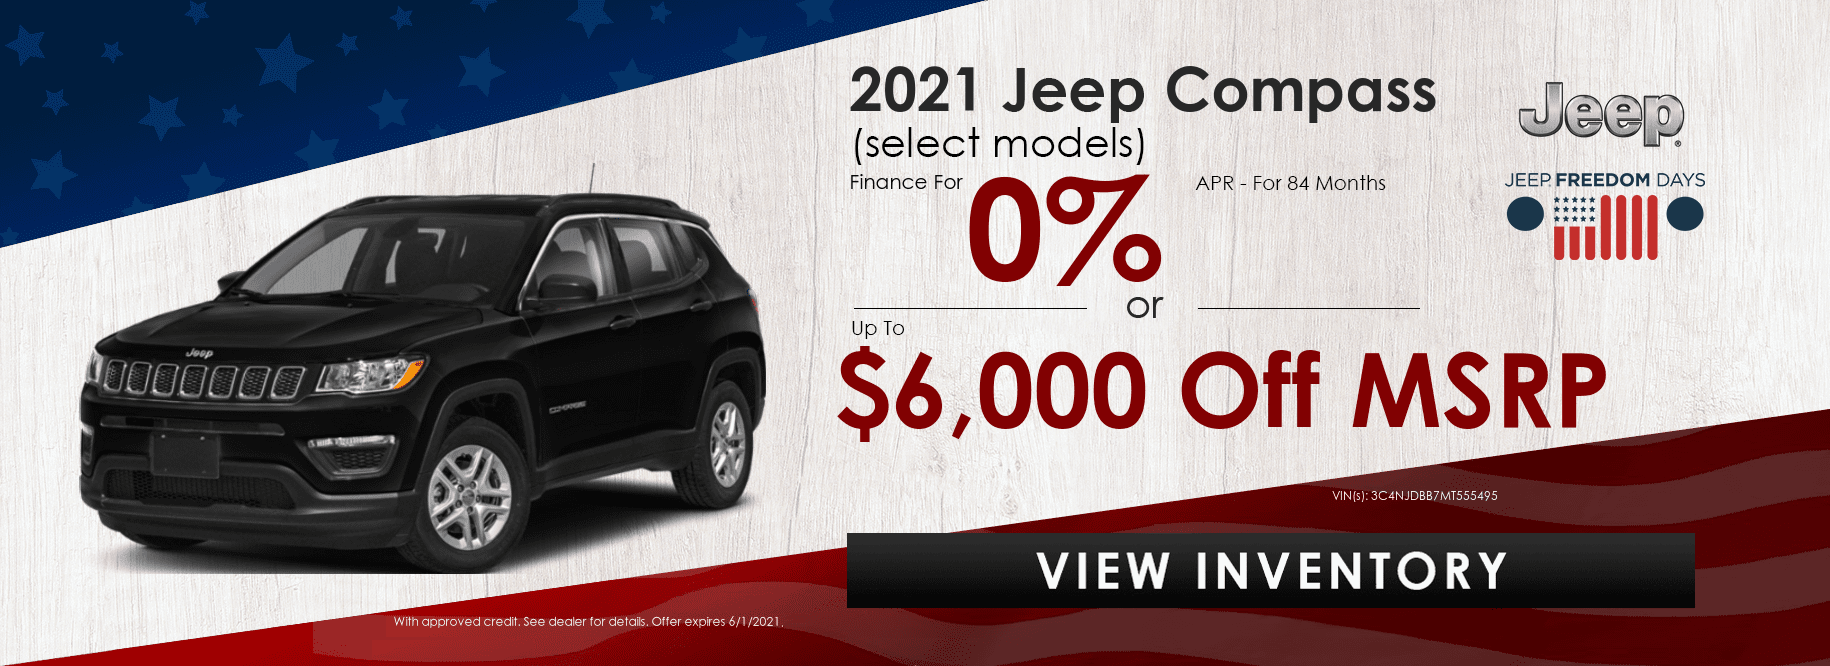 2021-Jeep-Compass-(select-models)-3